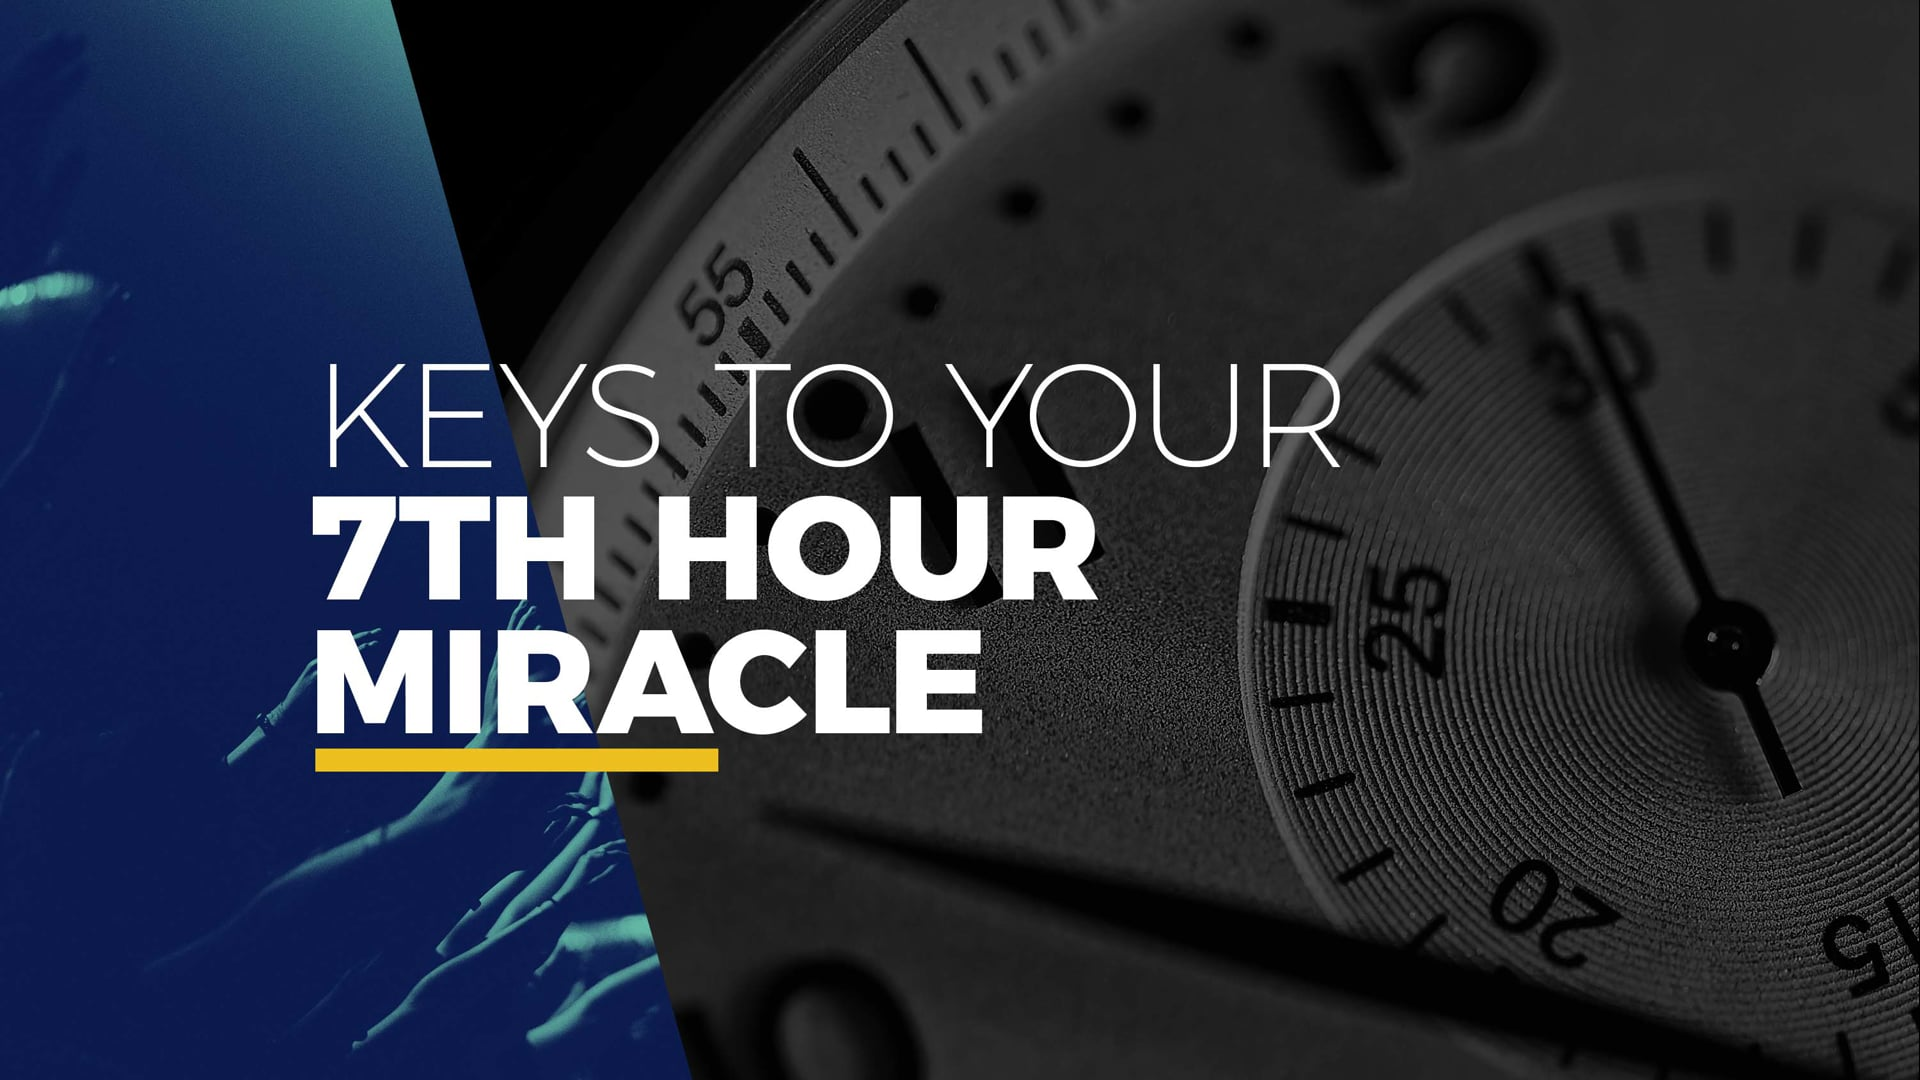 Prayer Conference: Keys to Your 7th Hour Miracle